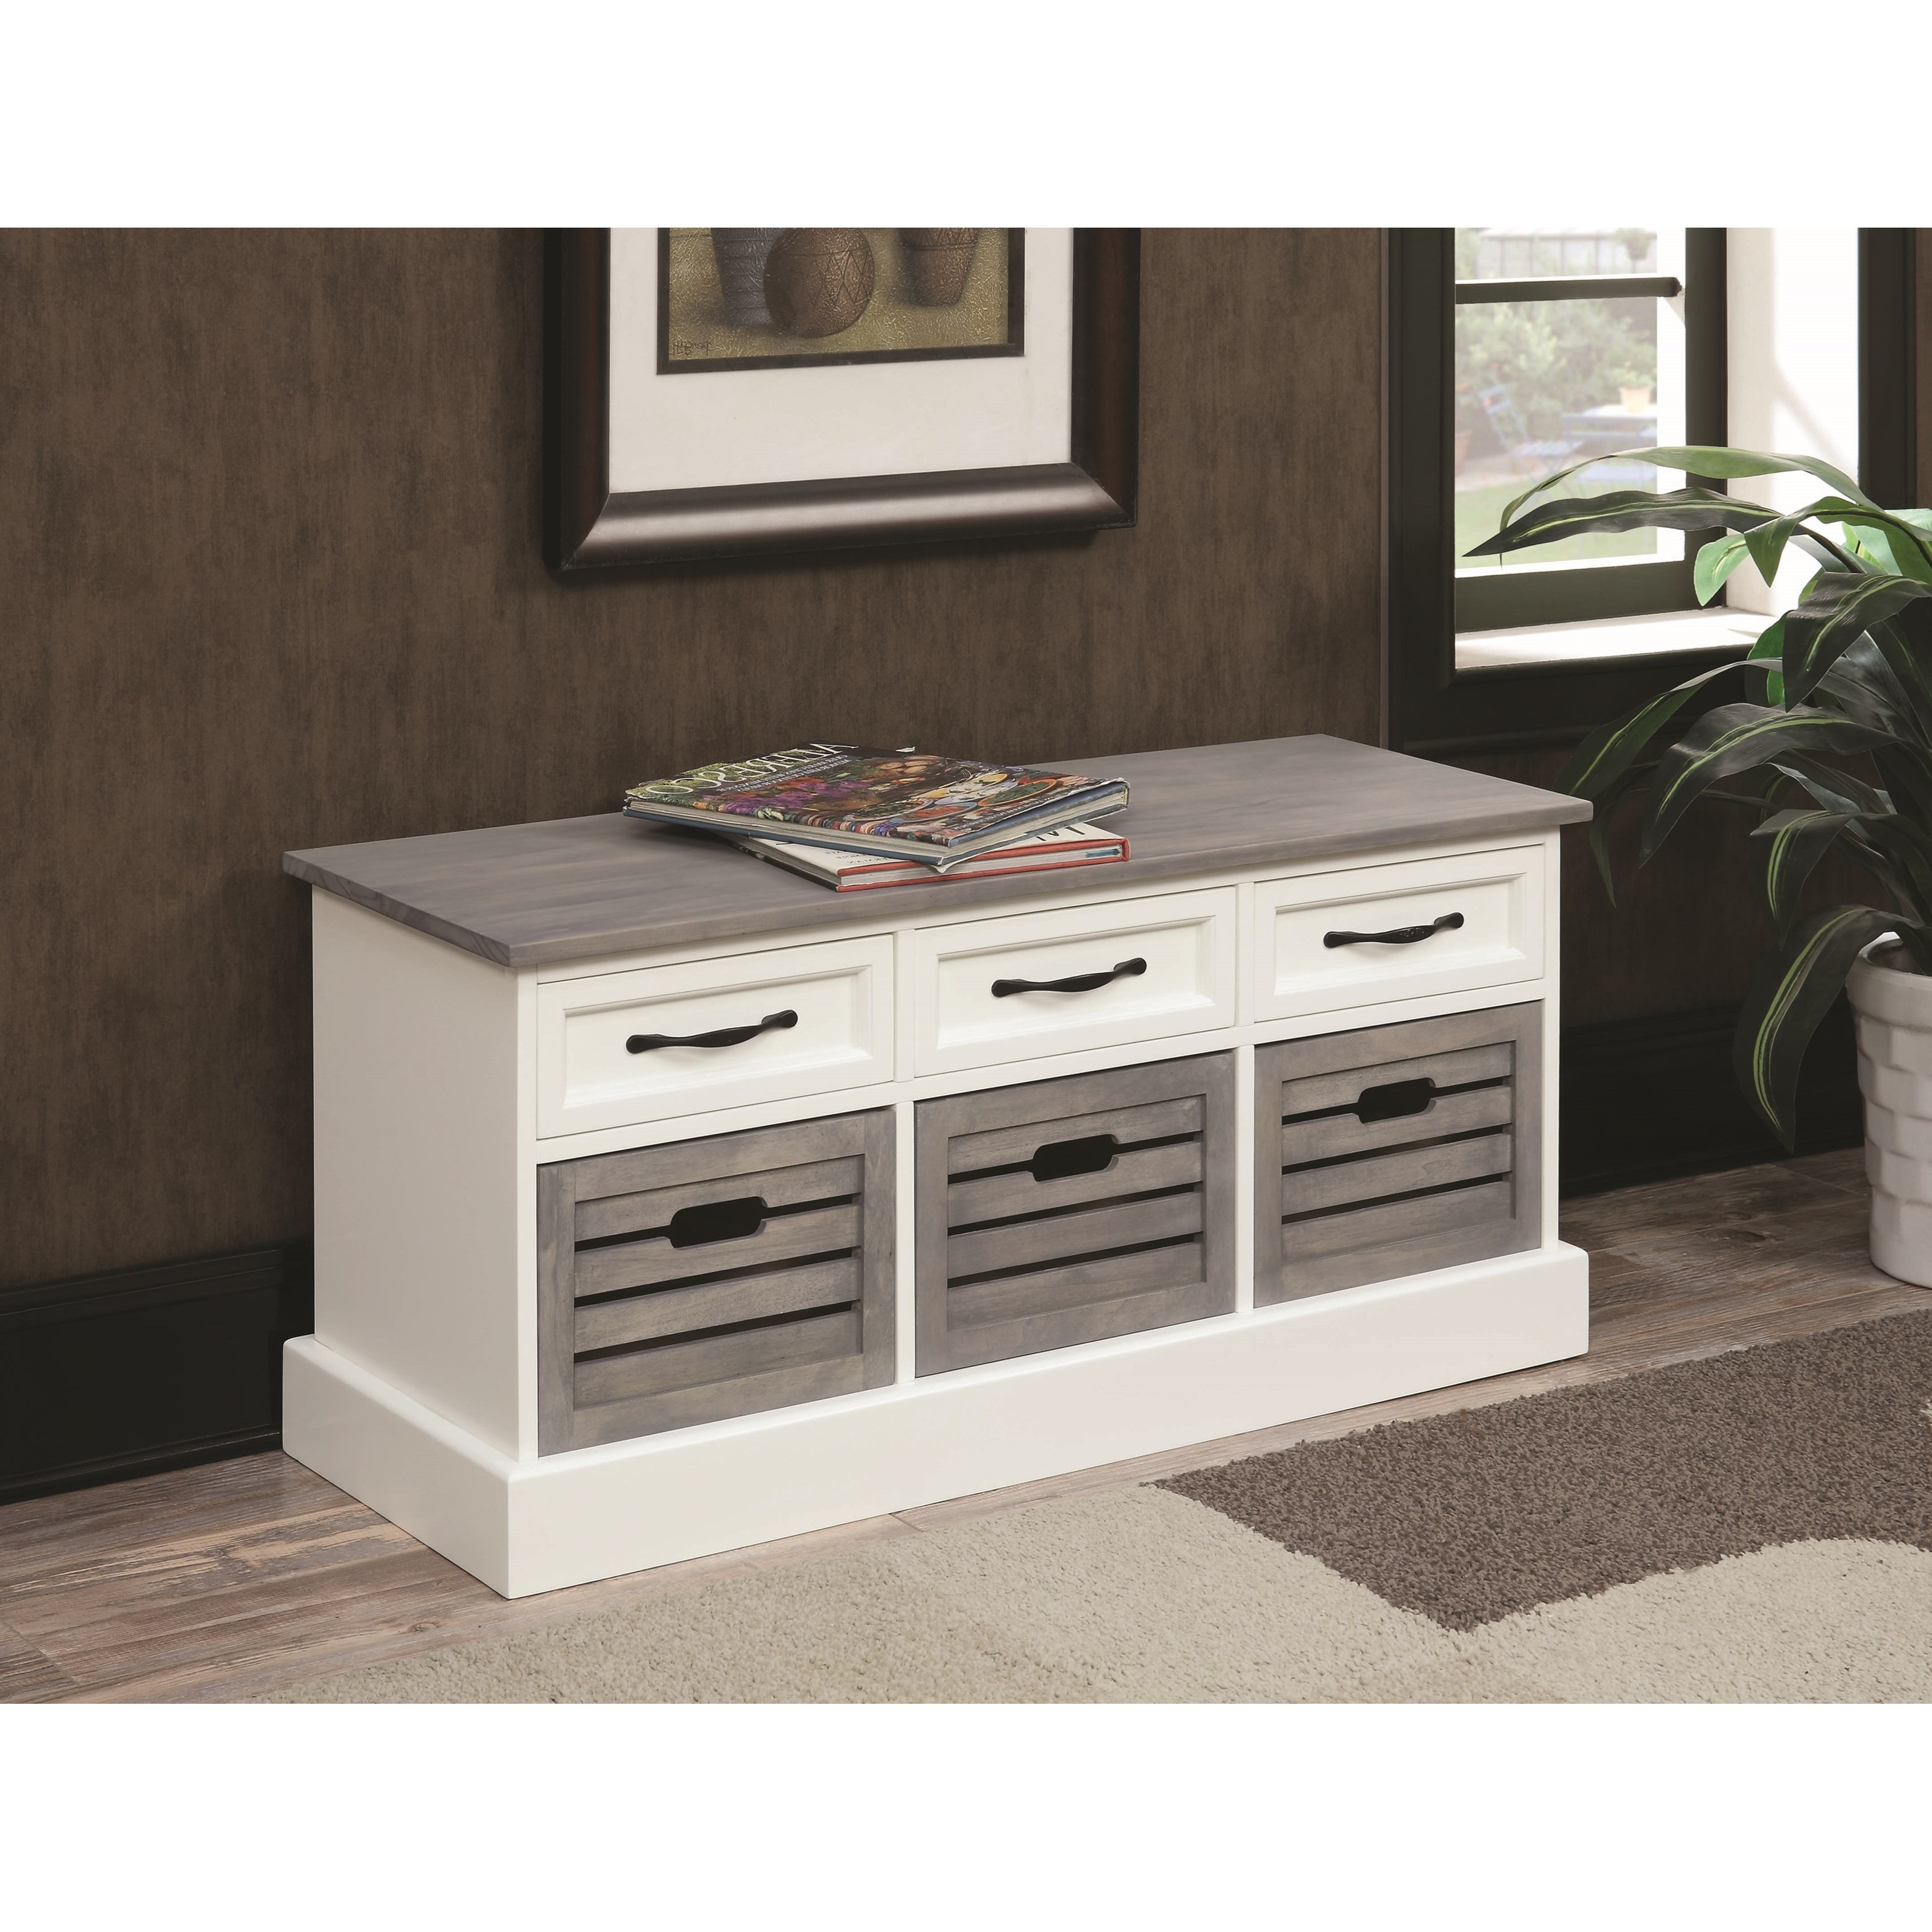 Benches Storage Bench Cabinet Knox Furniture Direct